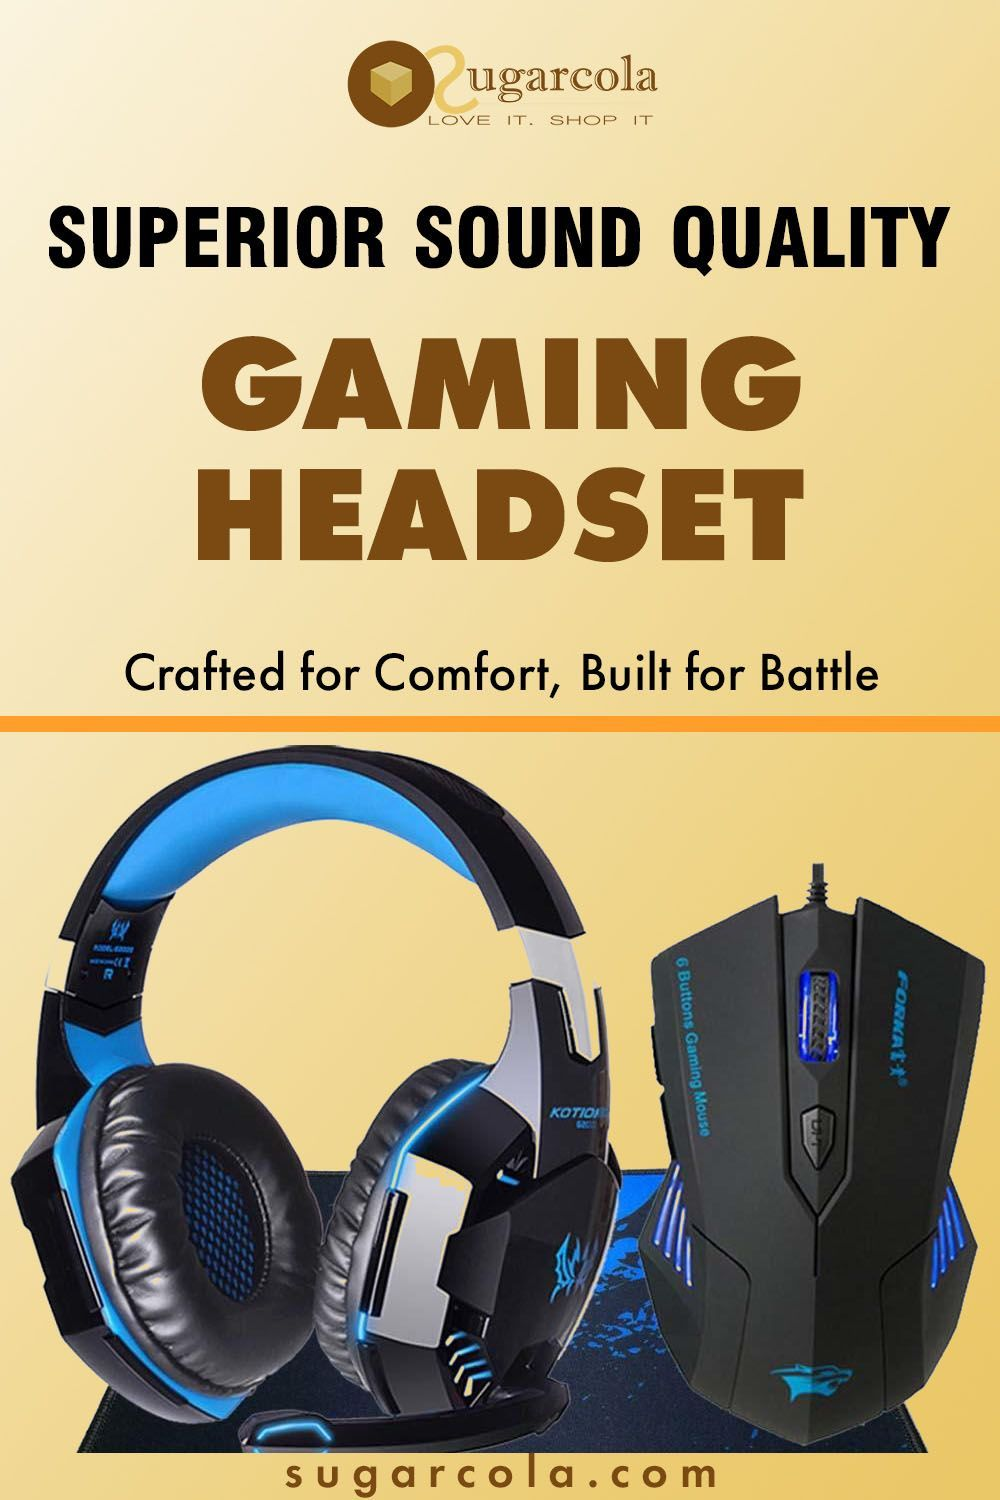 Louder with an Amazing Gaming Headset